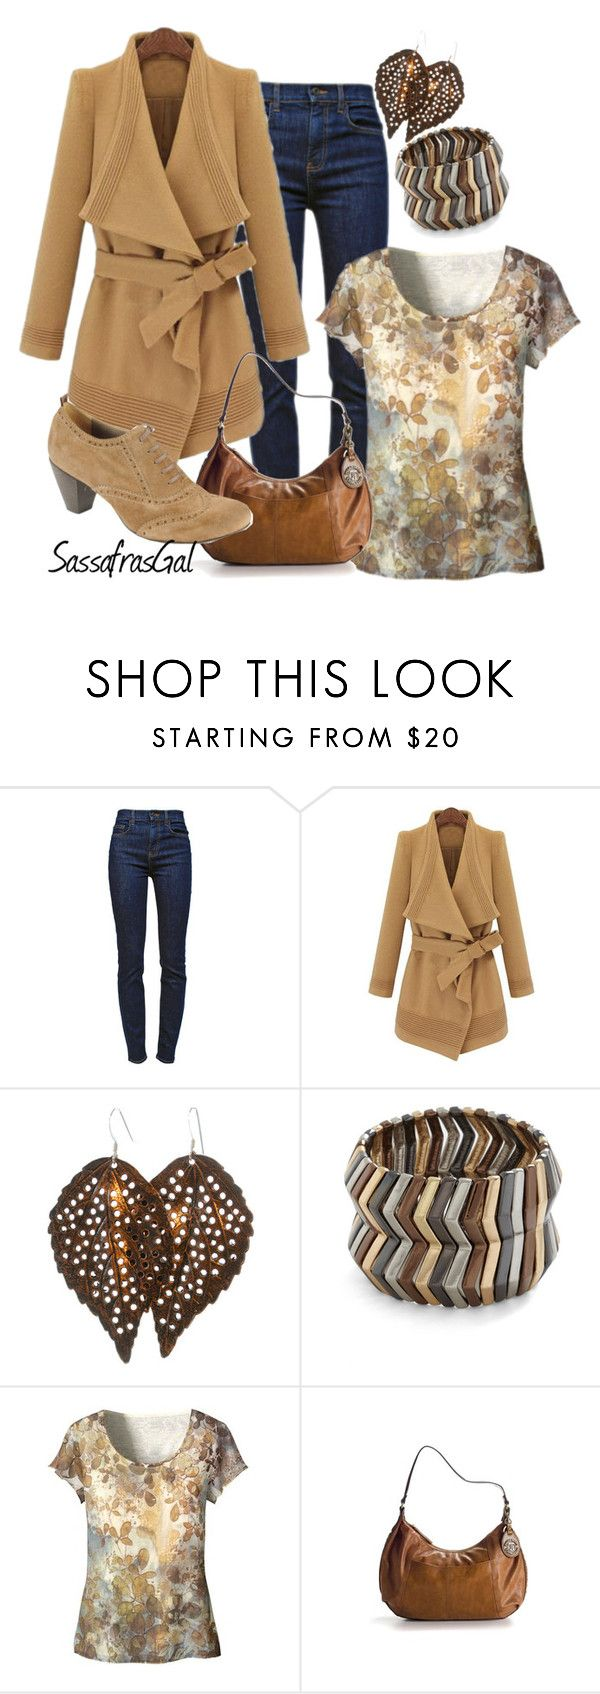 """Camel Coat"" by sassafrasgal ❤ liked on Polyvore featuring Proenza Schouler, Mystique, Coldwater Creek, Tignanello and LOOKY"